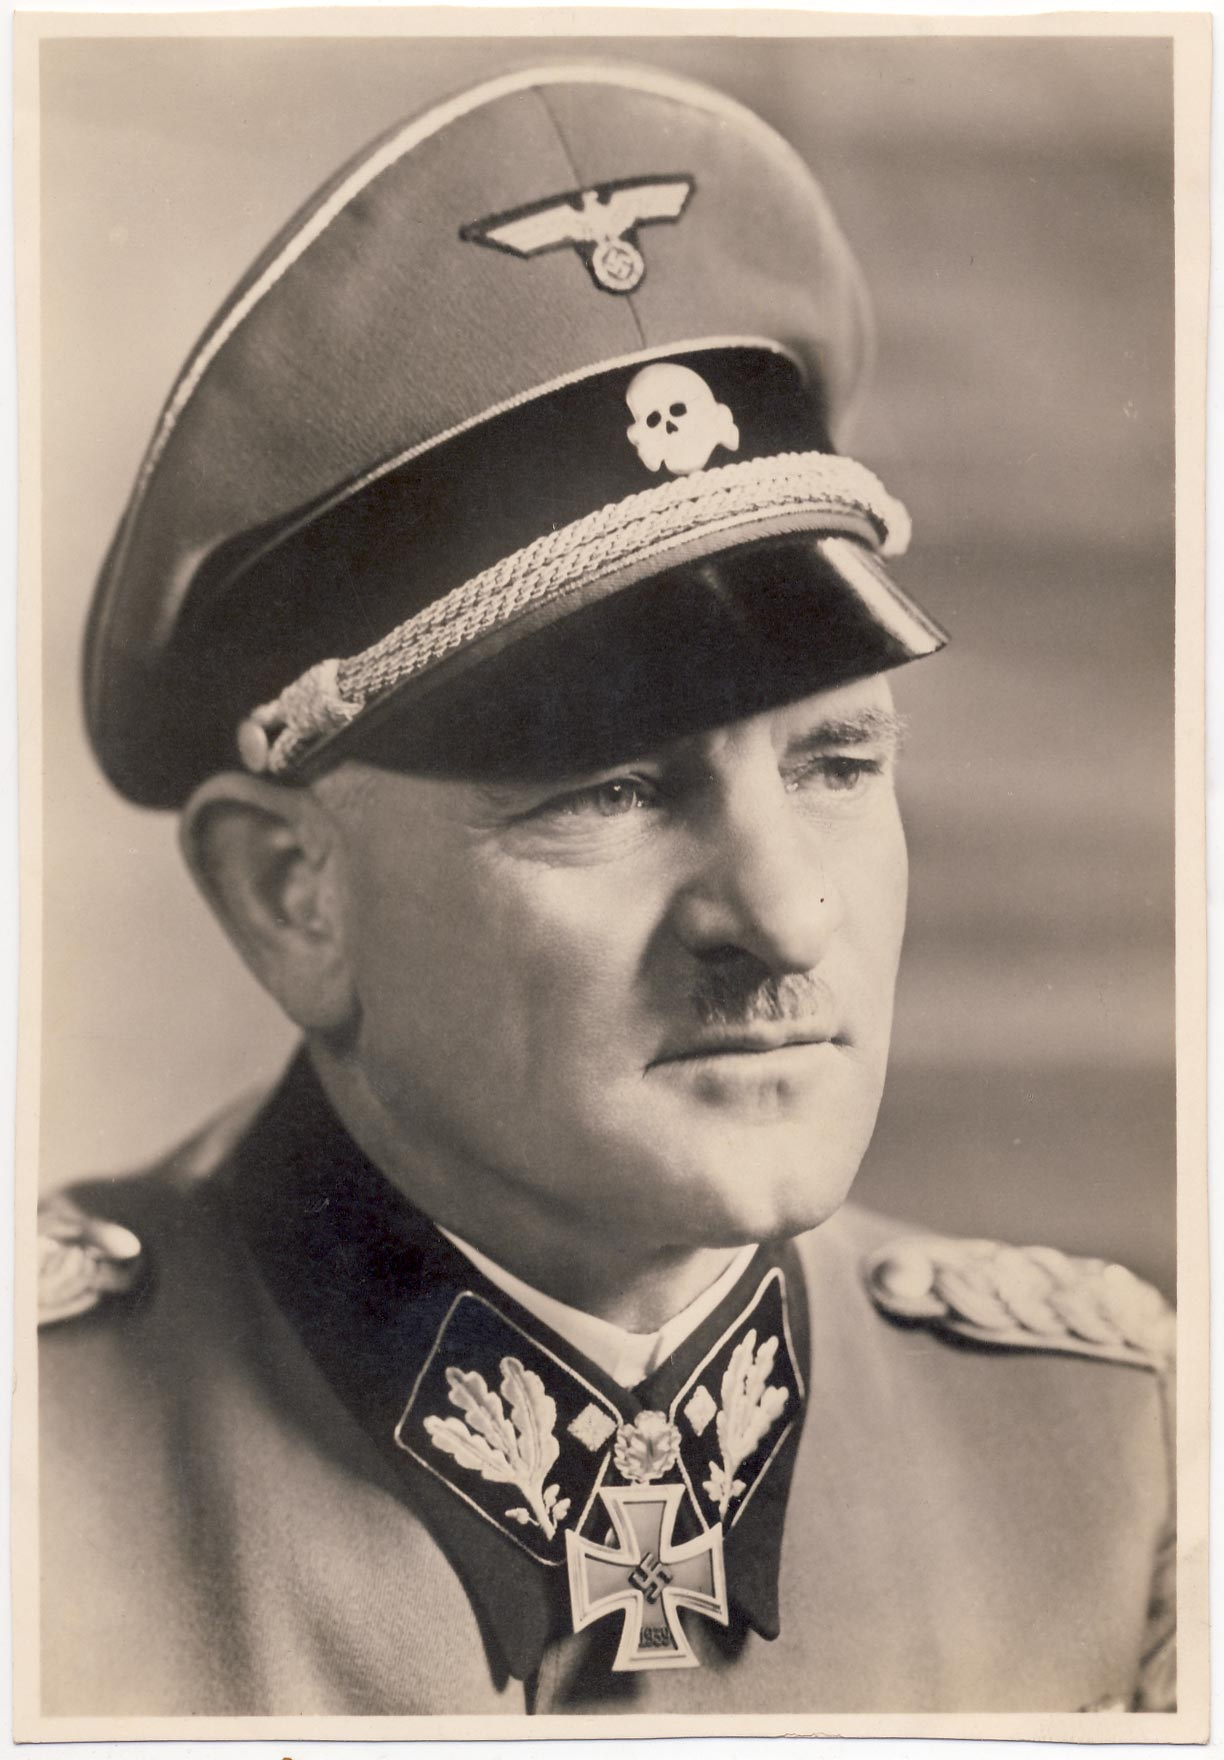 SS-Obergruppenführer Sepp Dietrich. Read description.